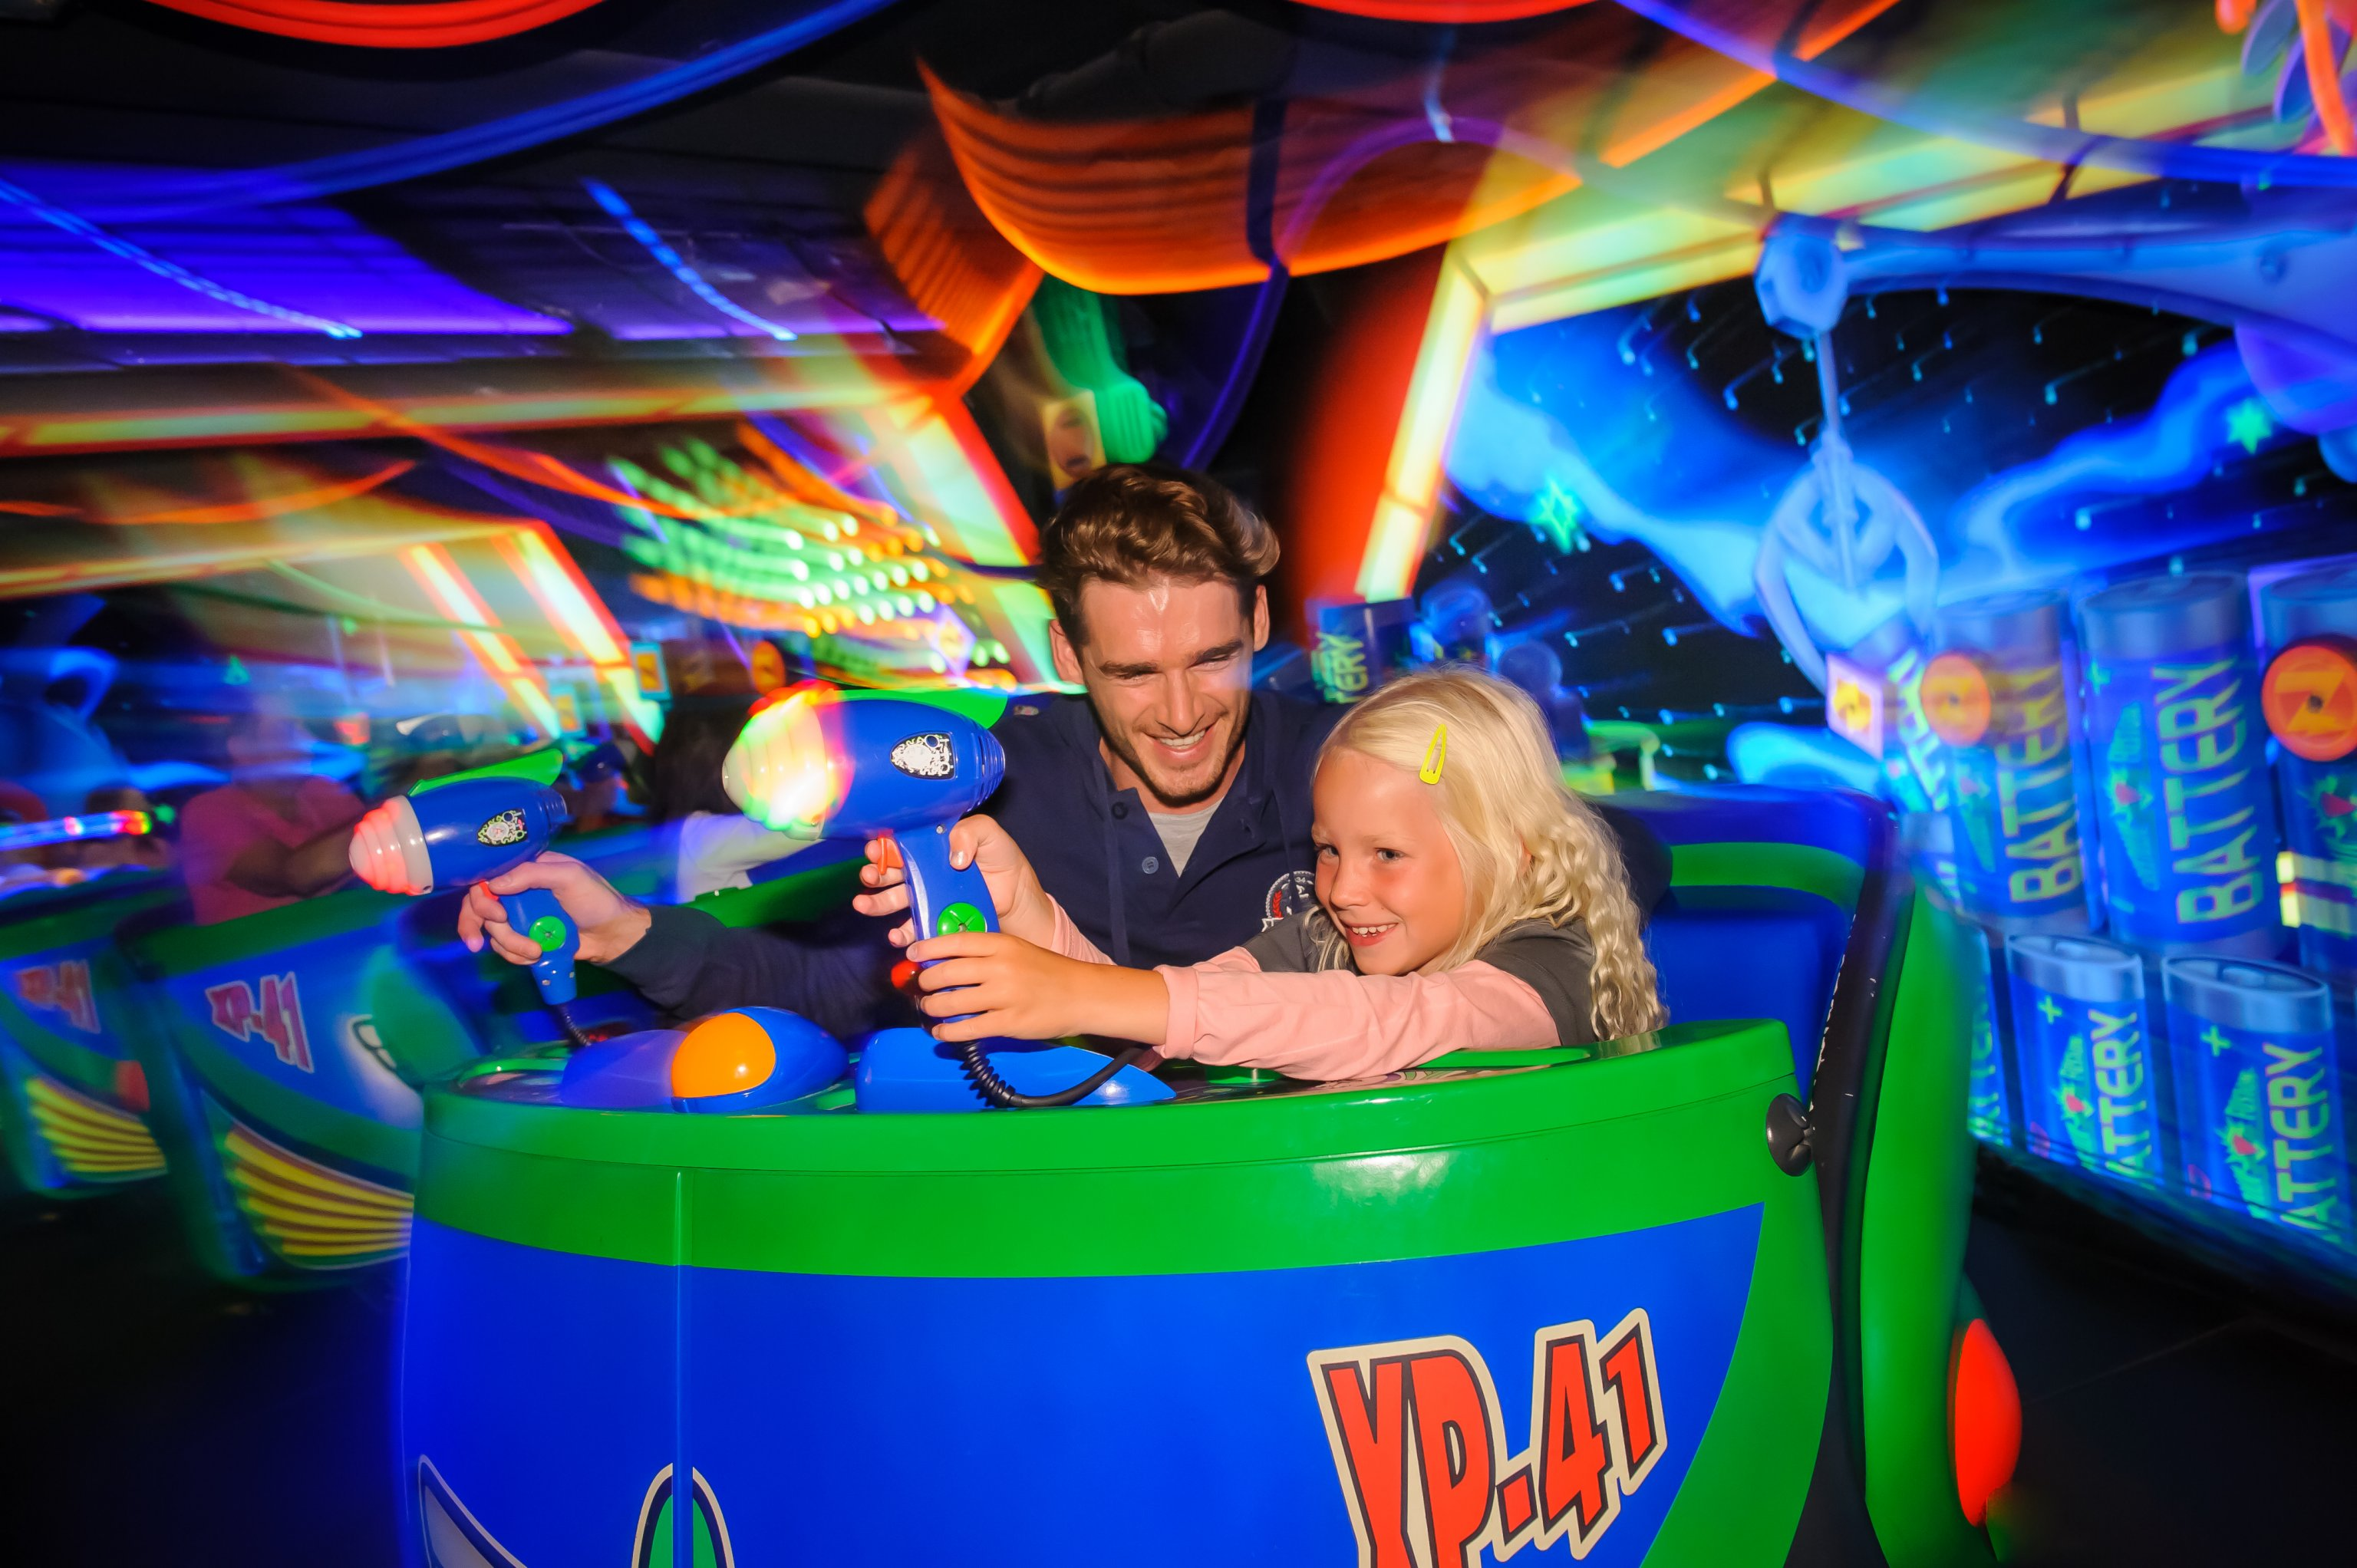 Buzz Lightyear Blast at Disneyland Paris